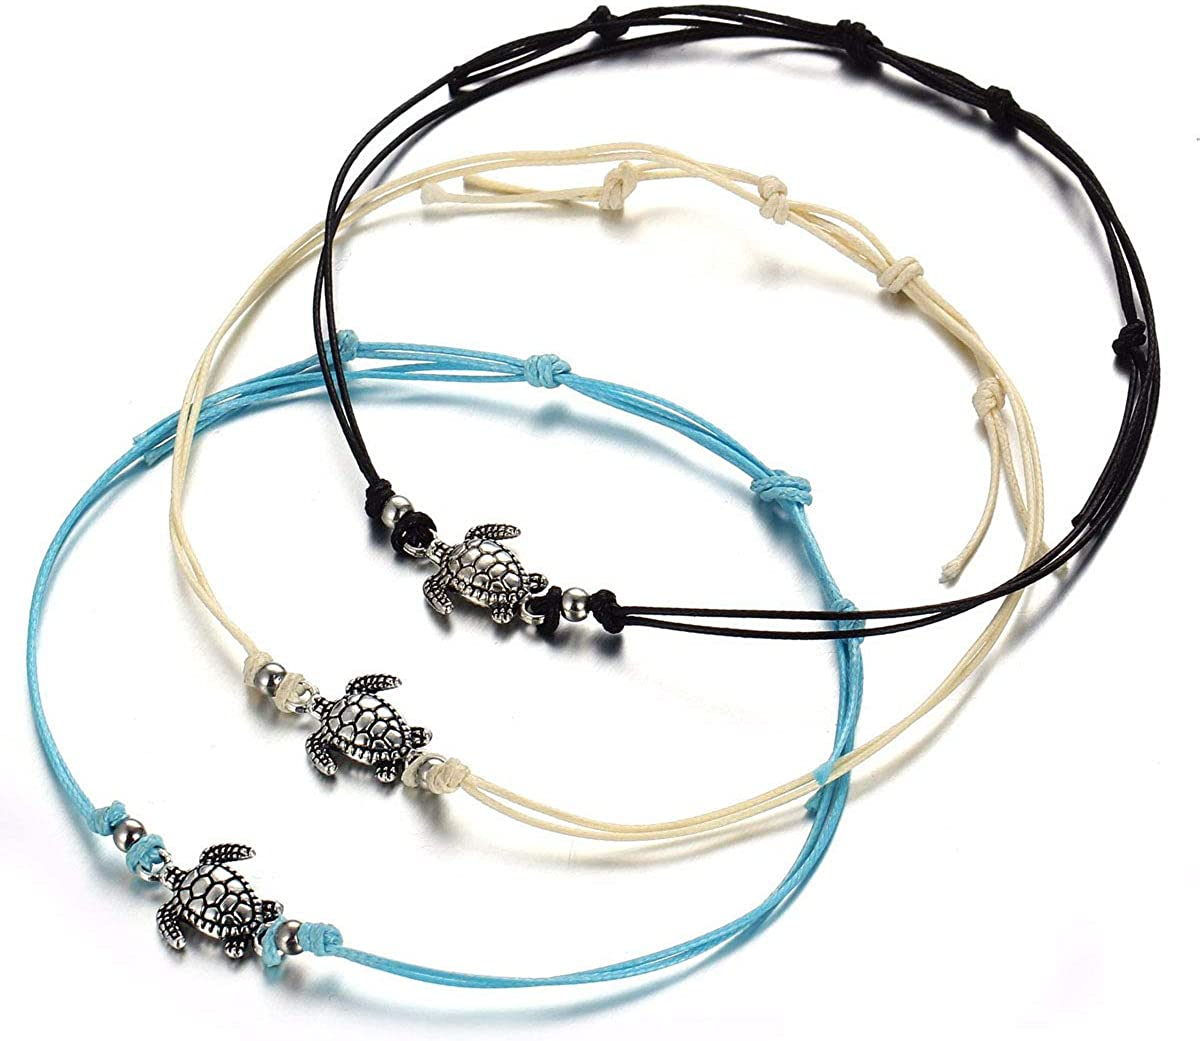 Turtle Beach Anklet Super sale Bracelet for Women Wax Rope All items free shipping Boho Pcs 3